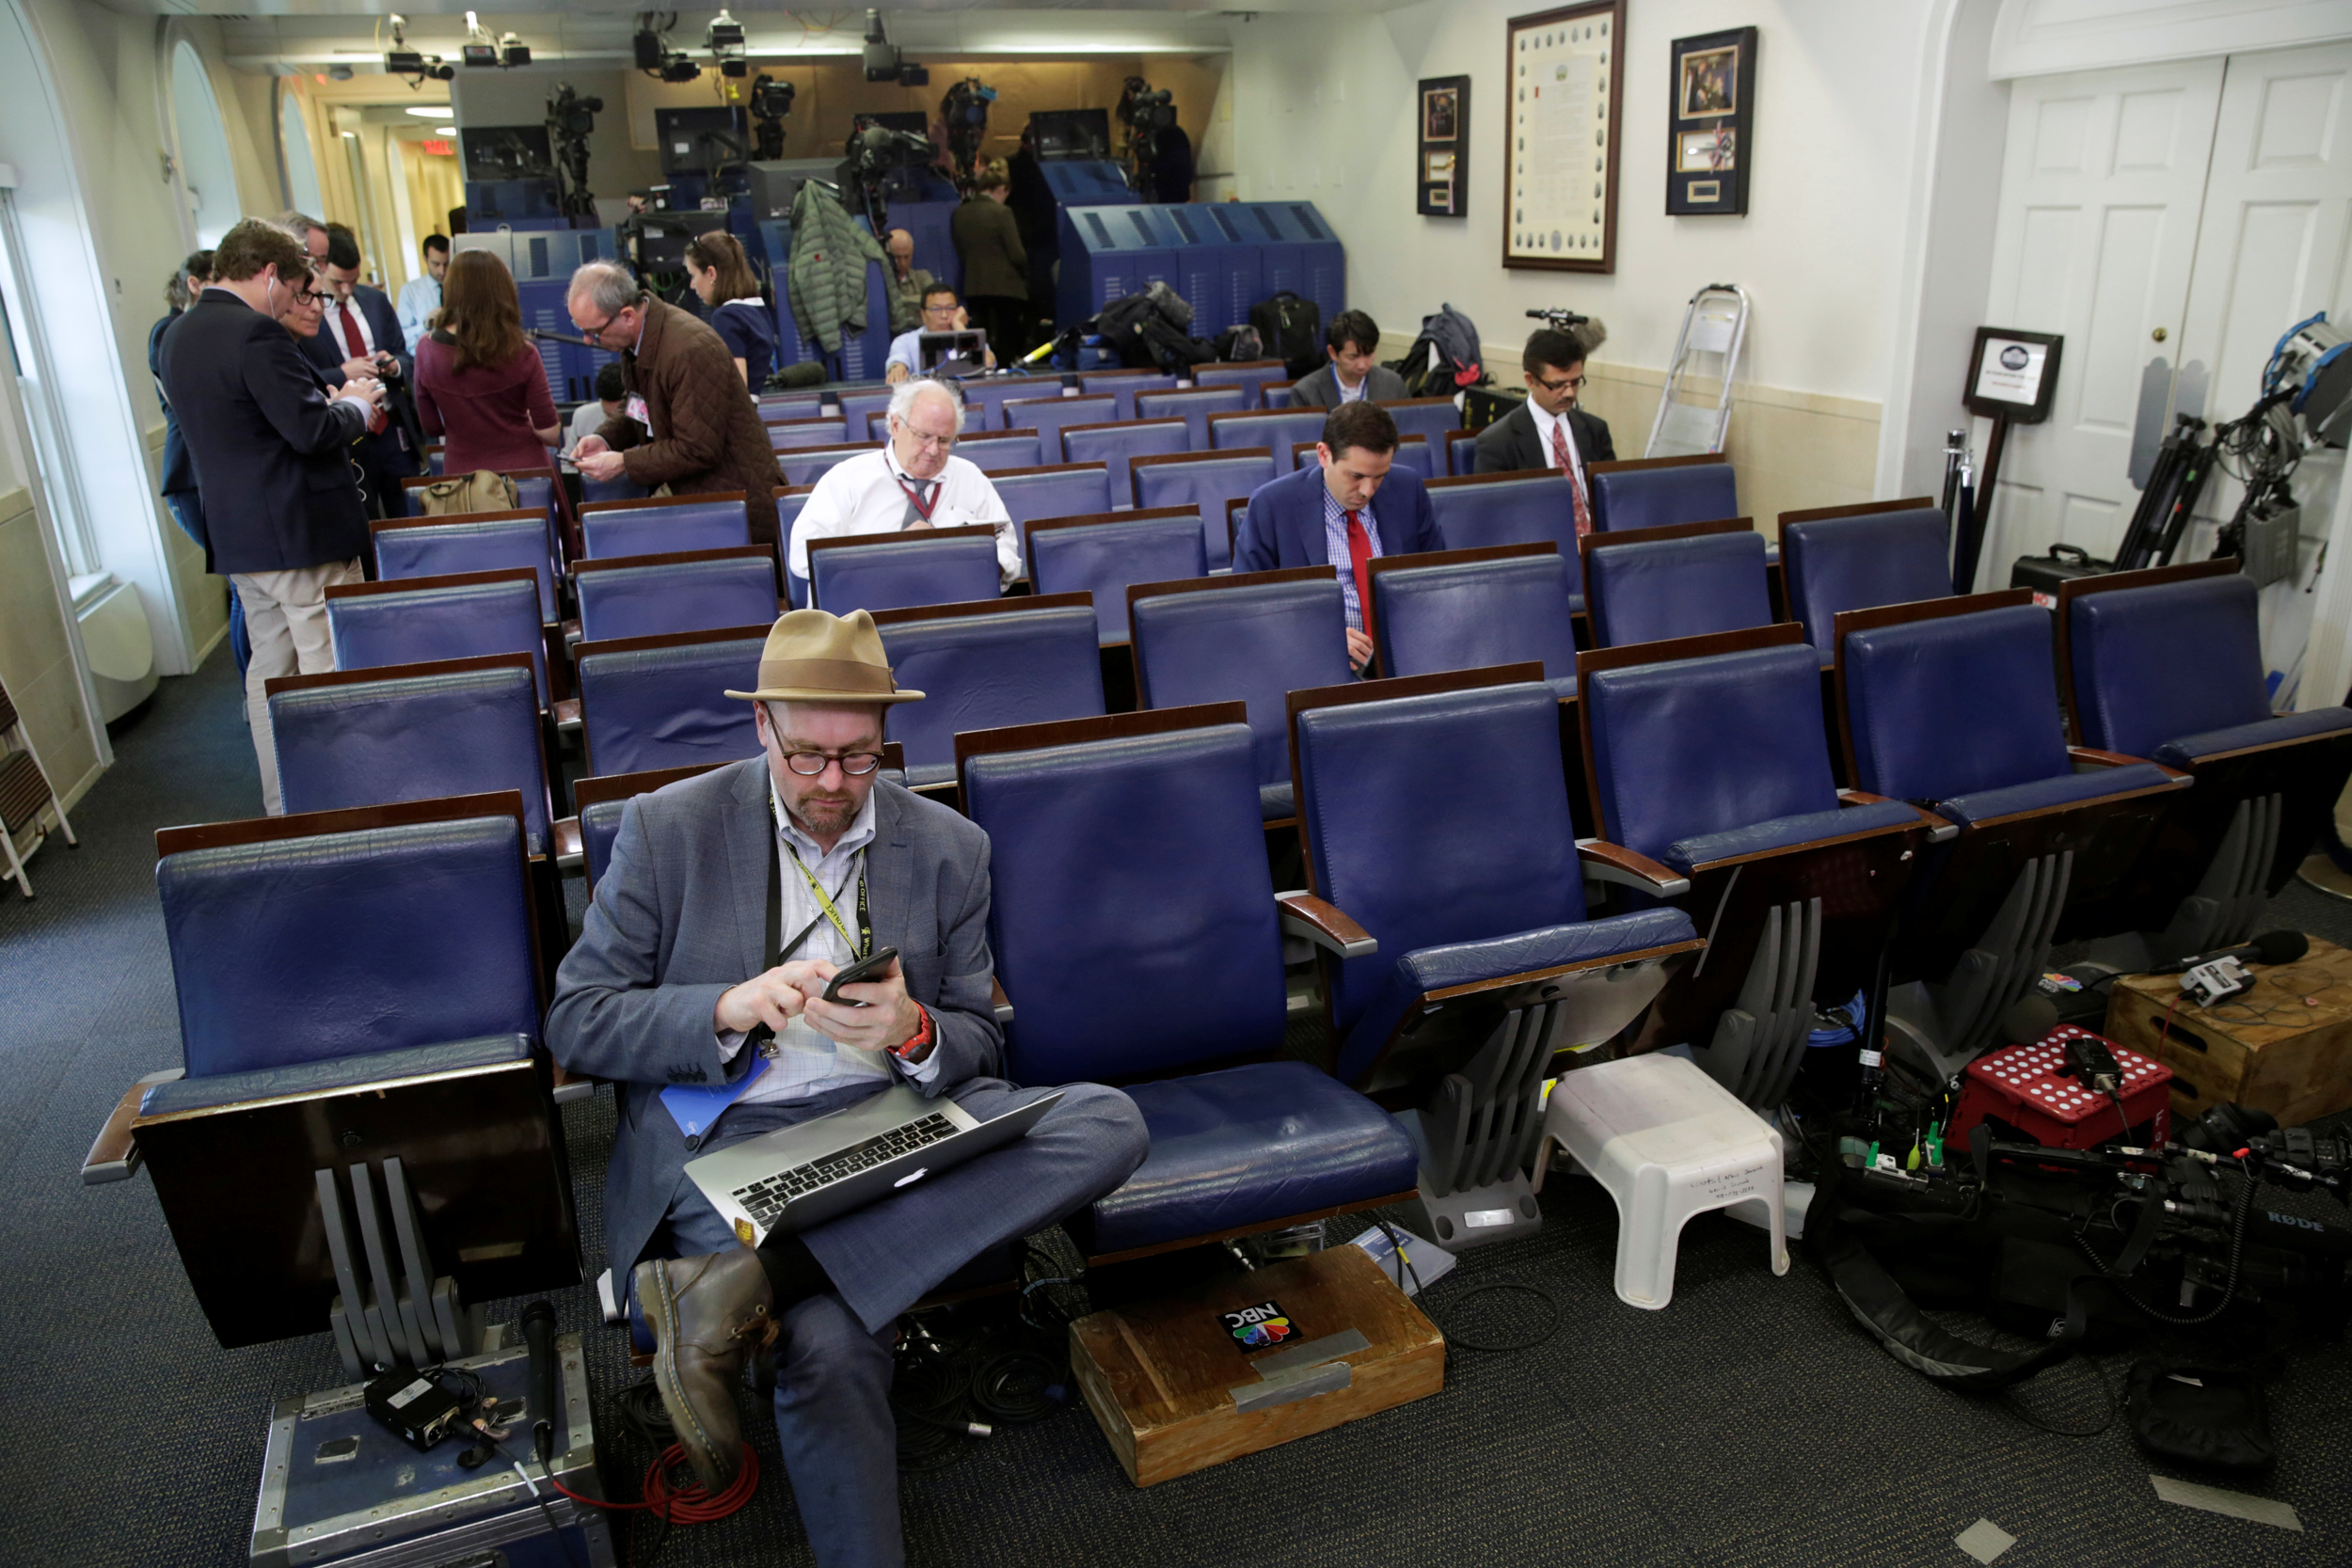 Image: Glenn Thrush, chief White House political correspondent for the The New York Times, works in the White House briefing room